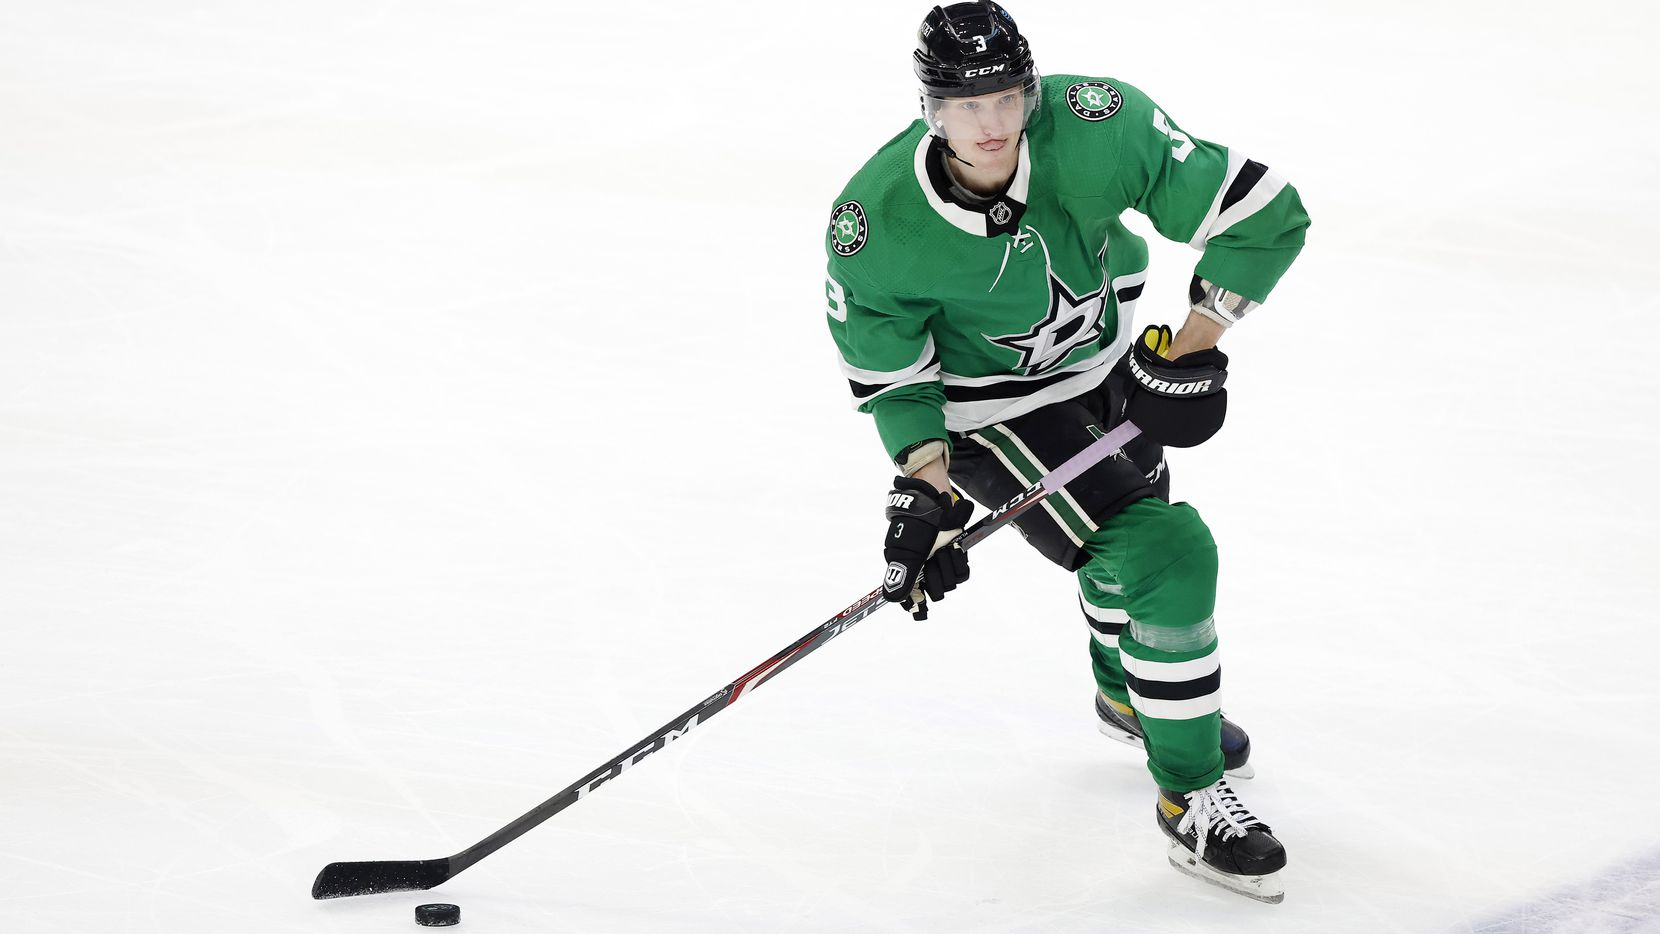 Dallas Stars defenseman John Klingberg (3) controls the puck at mid-ice the Stars play the Columbus Blue Jackets in the second period at the American Airlines Center in Dallas, Thursday, March 4, 2021.